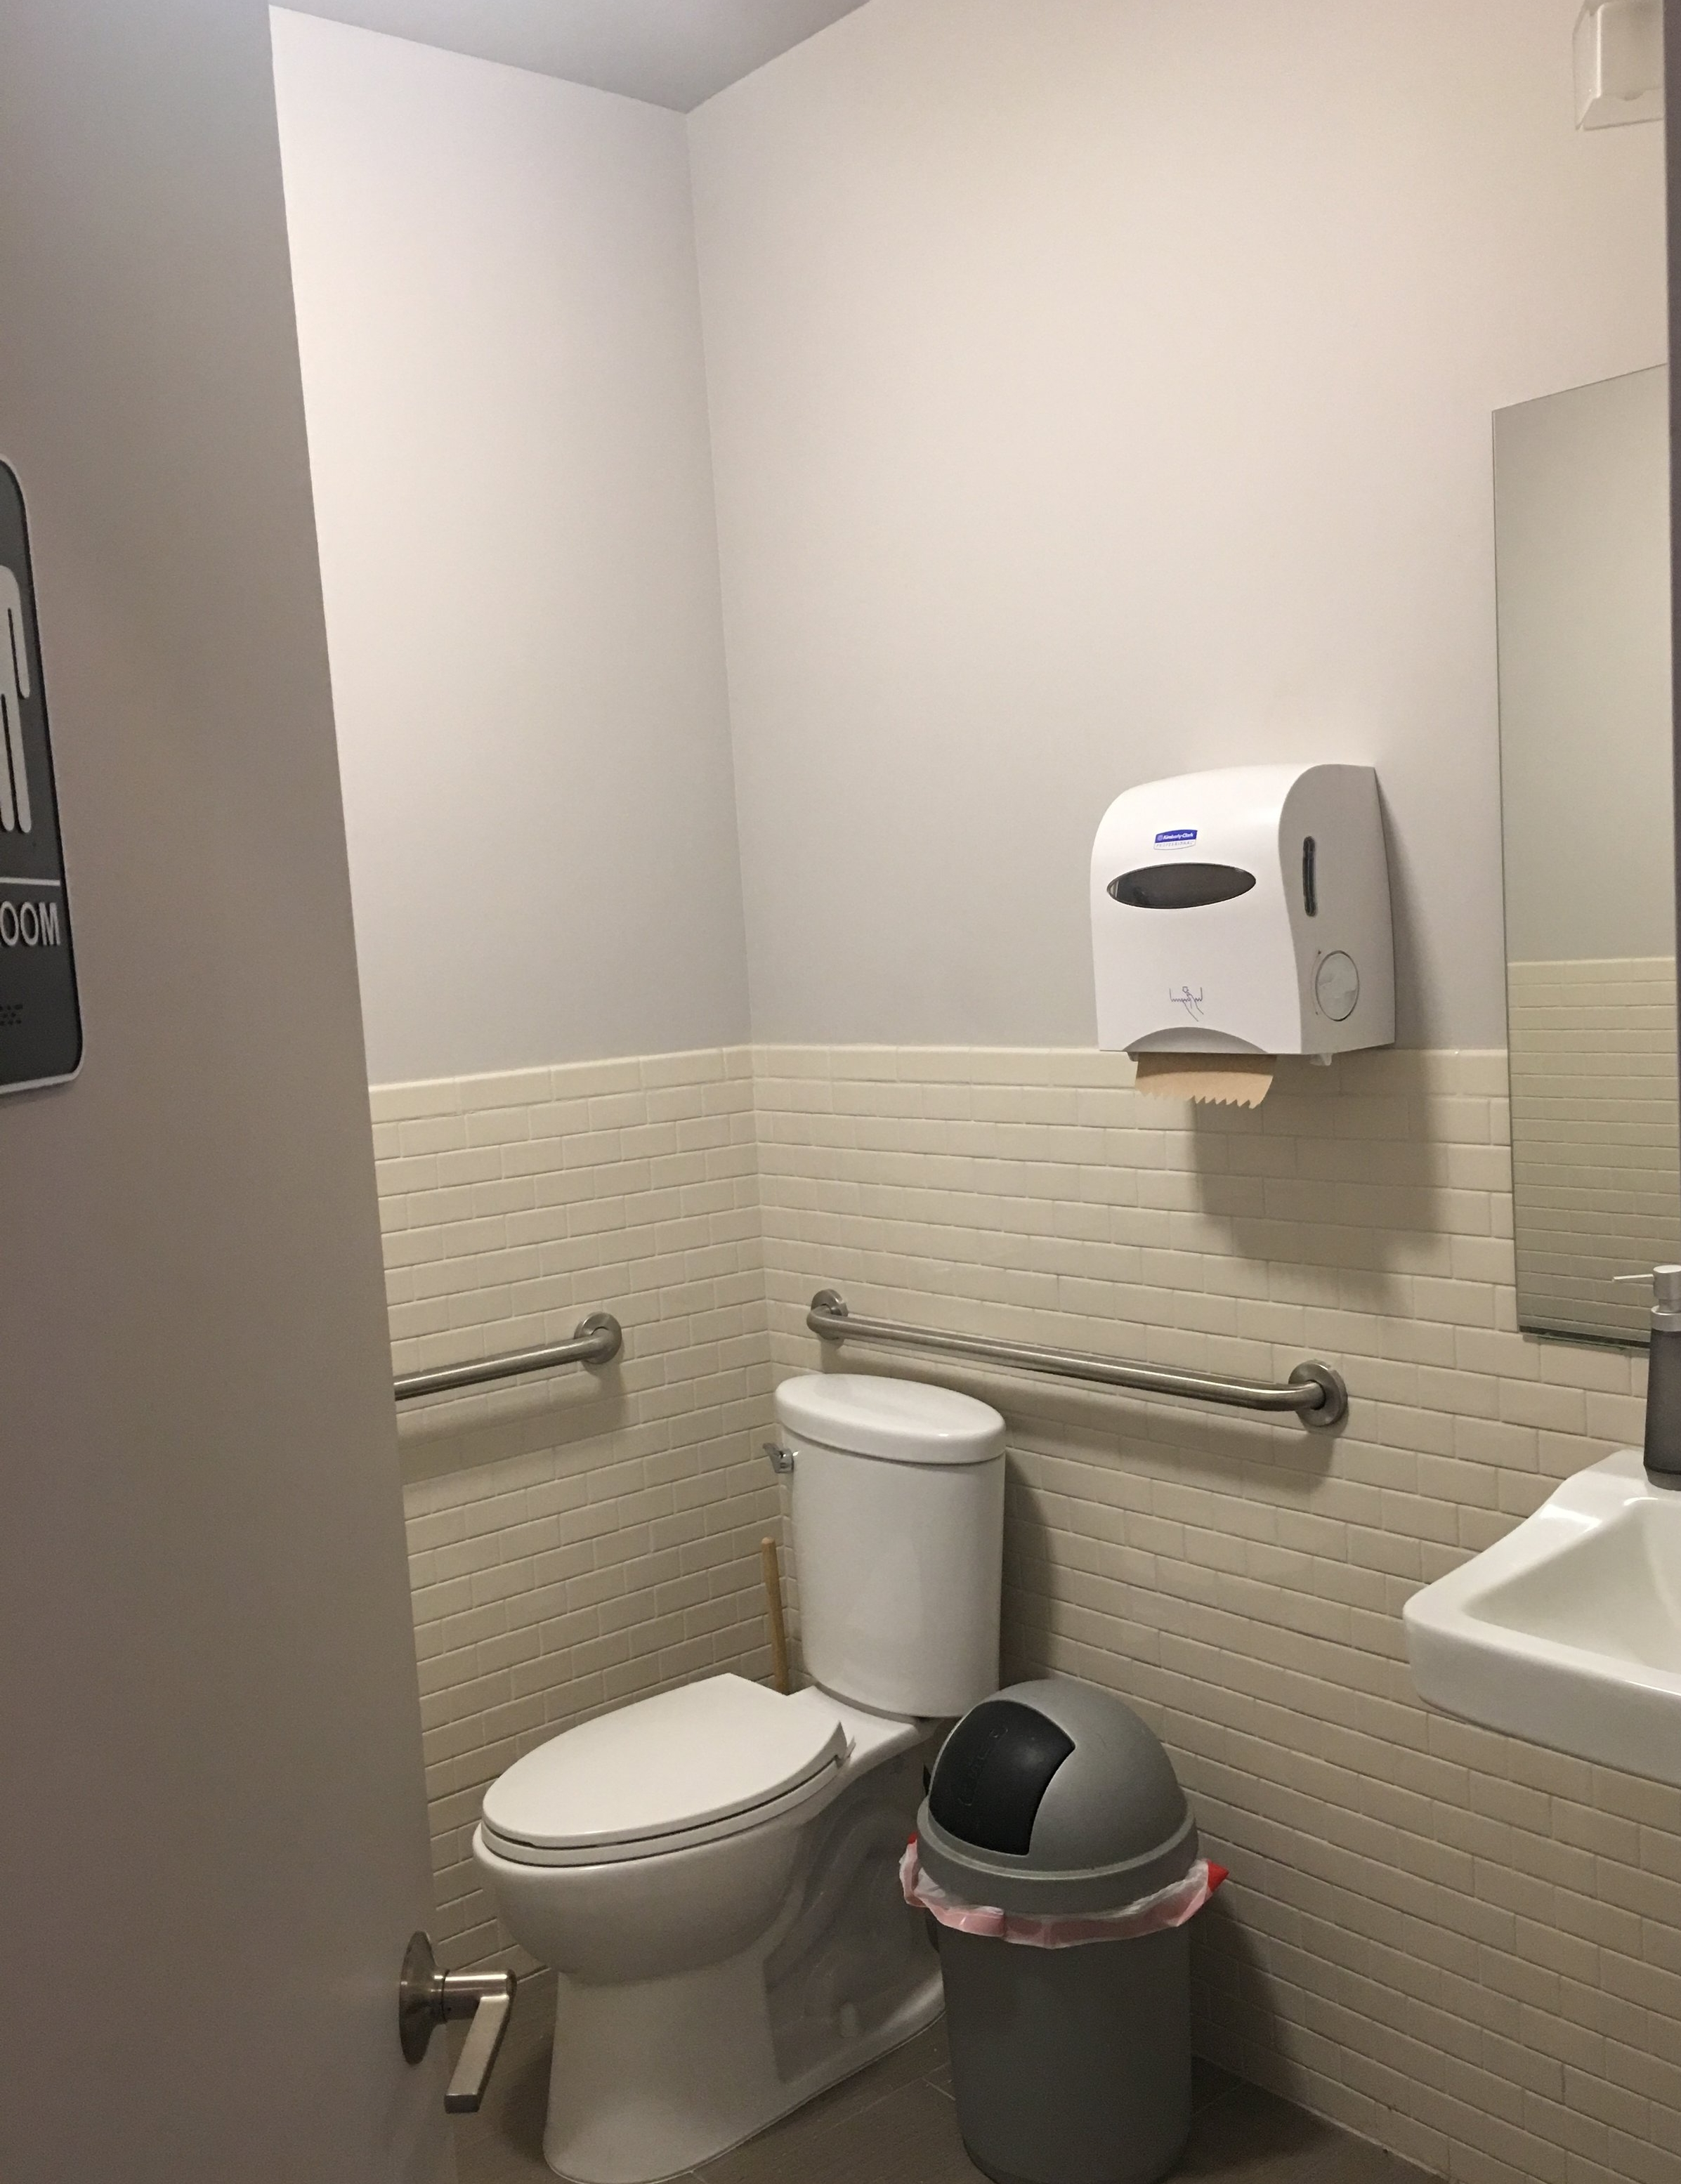 Your Own Studio has a bathroom! It might come in handy...